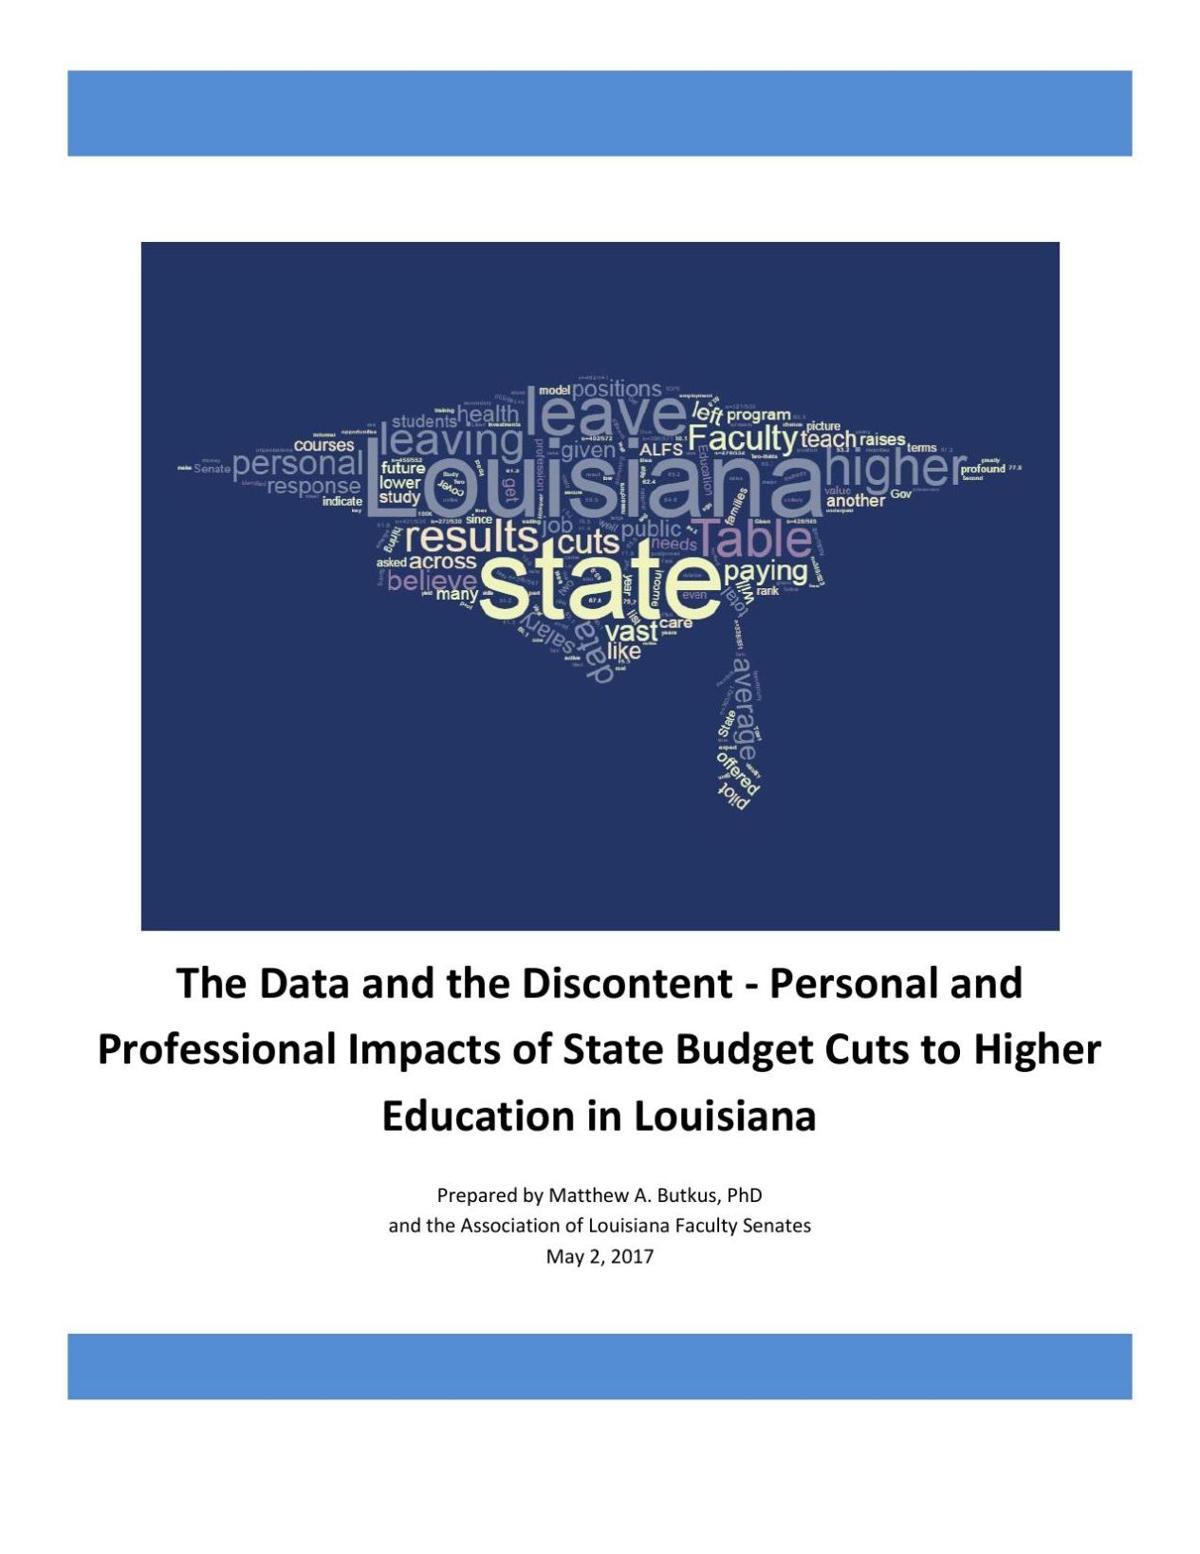 The Data and the Discontent - Personal and Professional Impacts of State Budget Cuts to Higher Education in Louisiana